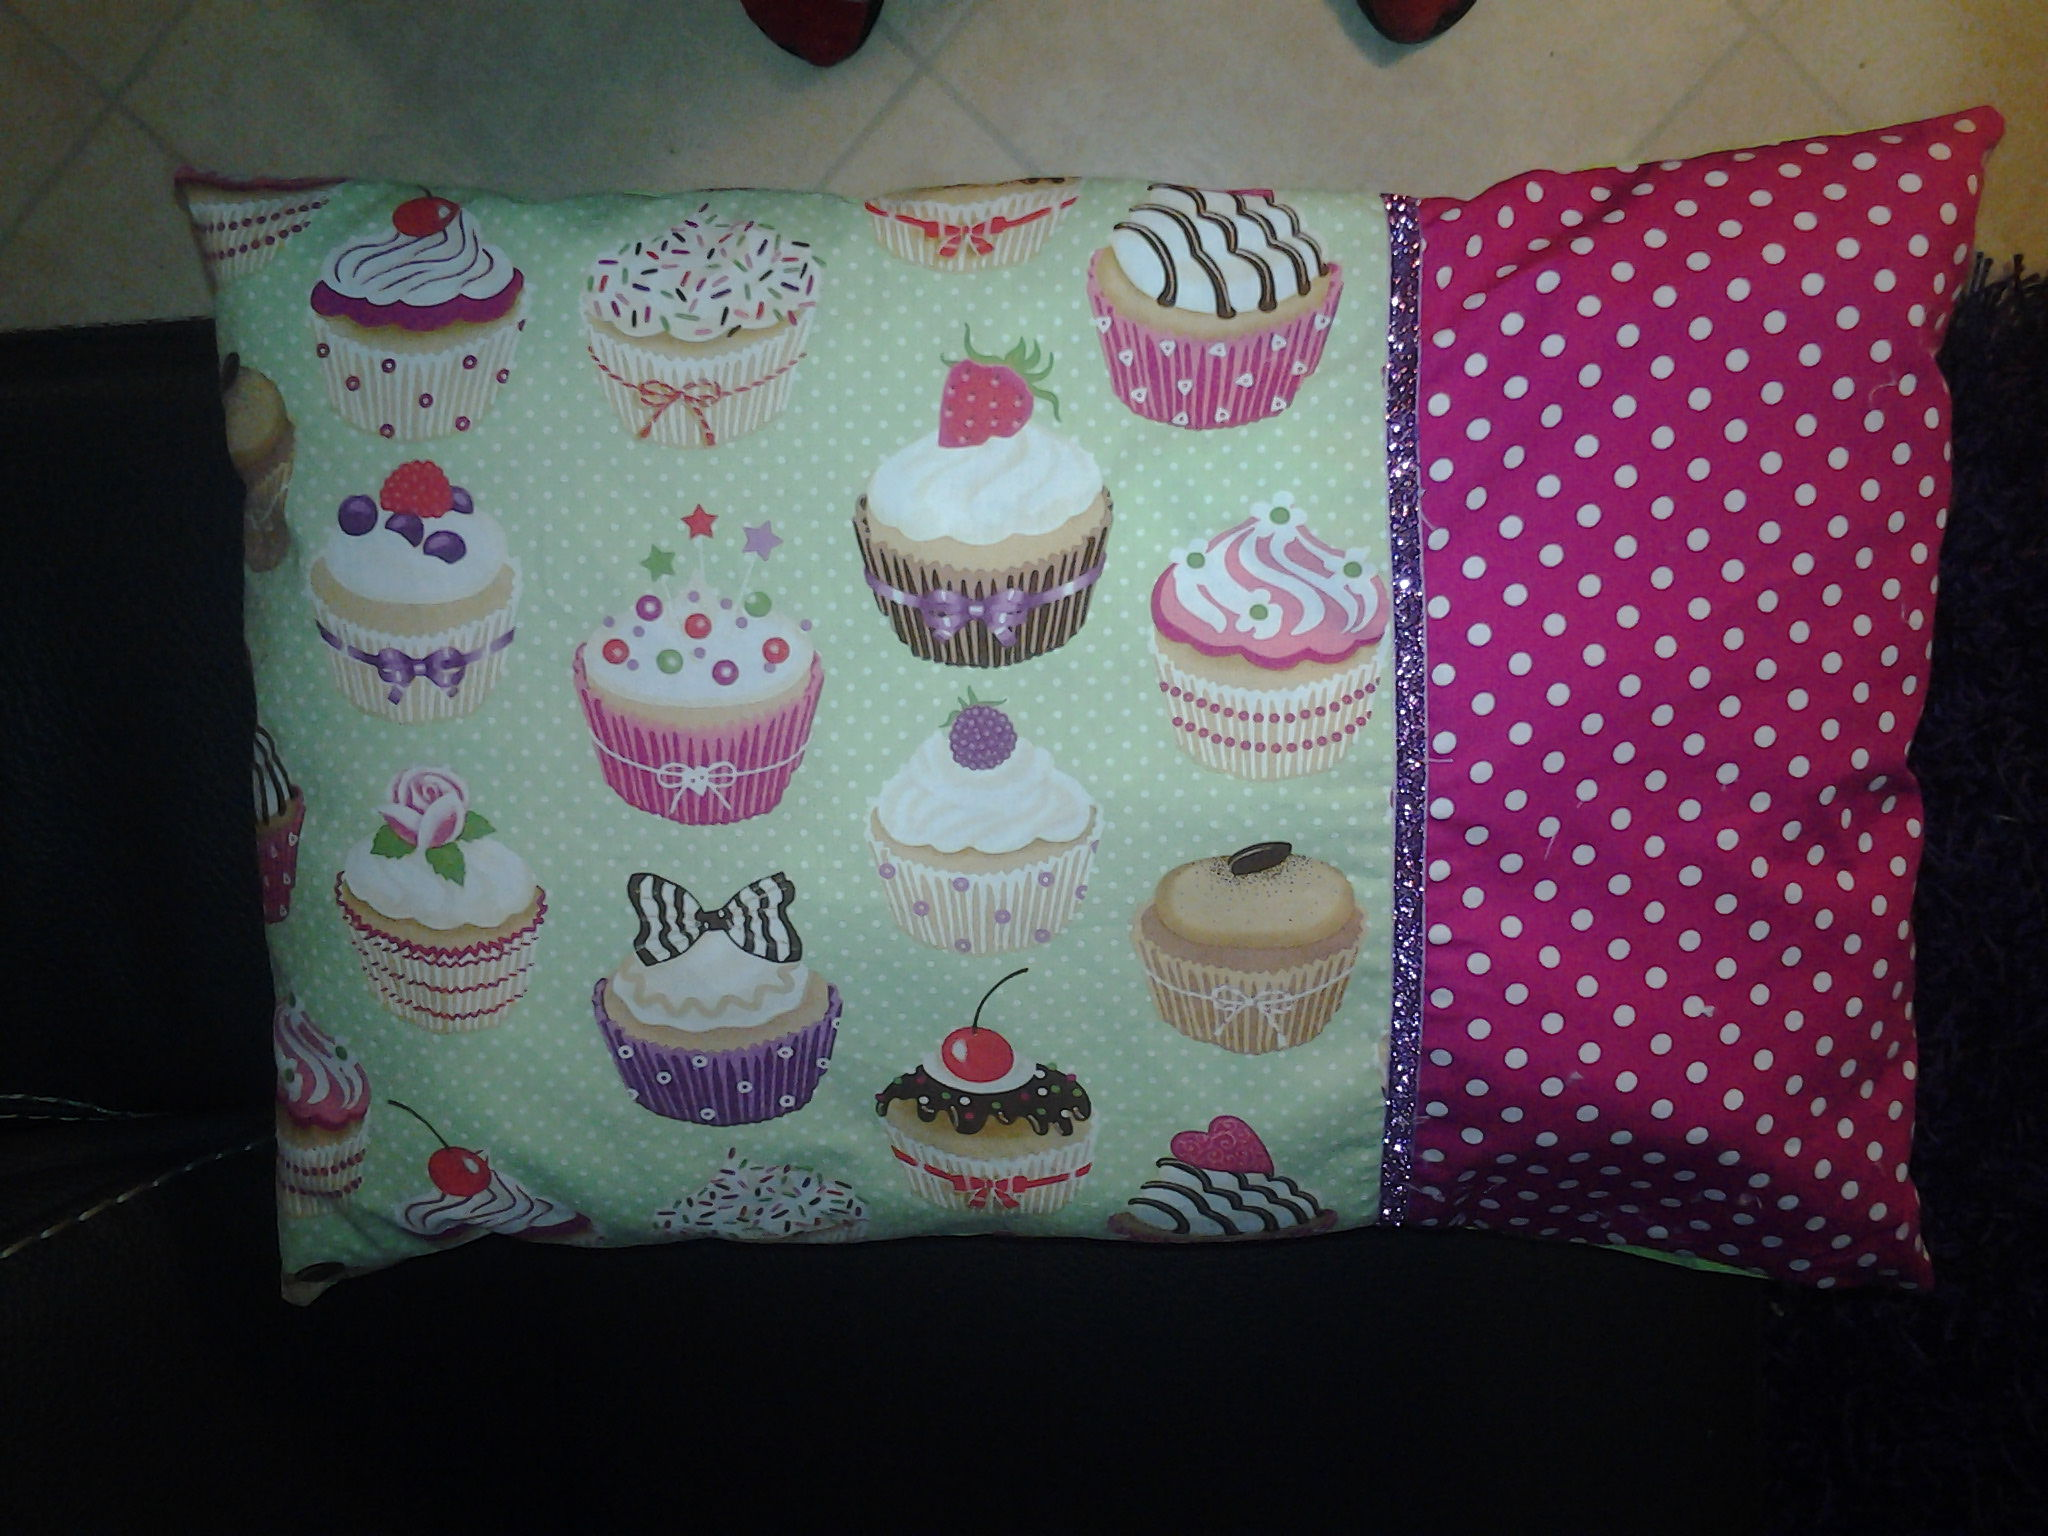 Coussin cupcake.... so cute!!